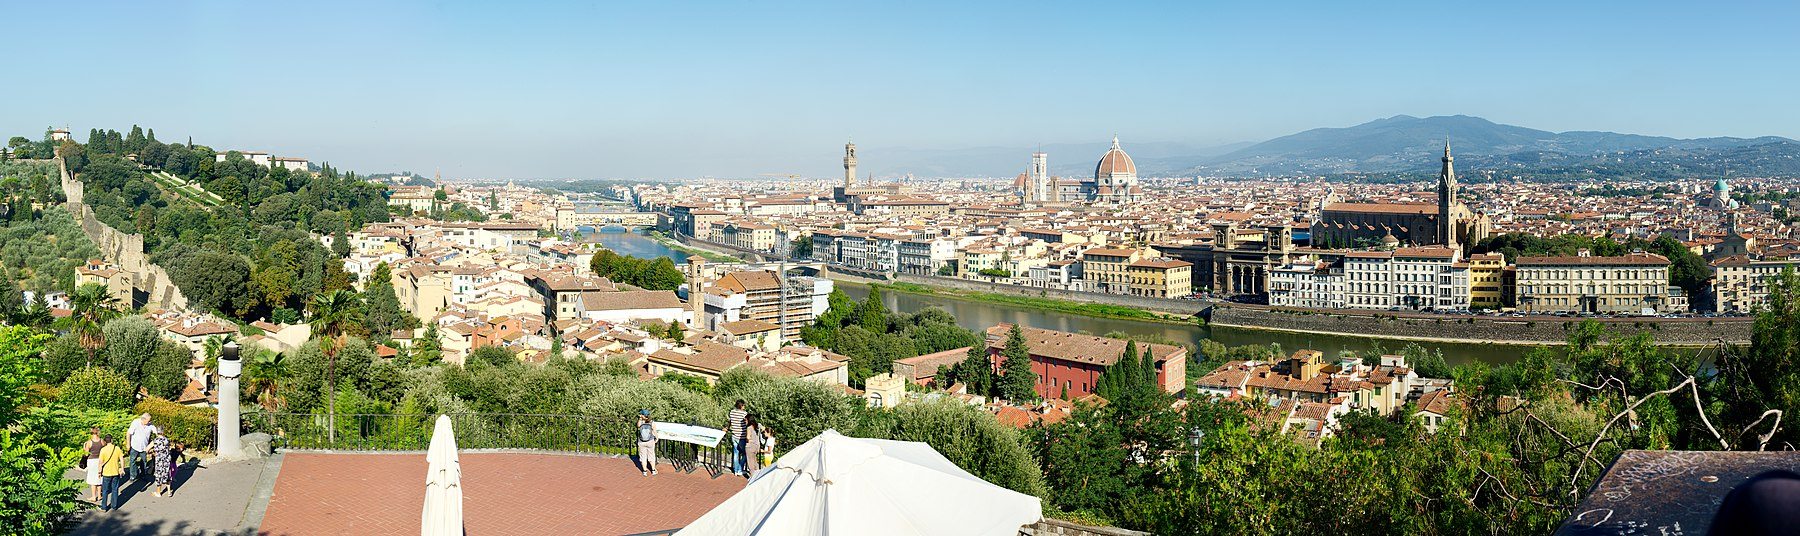 View of Florence from Piazzale Michelangelo.jpg